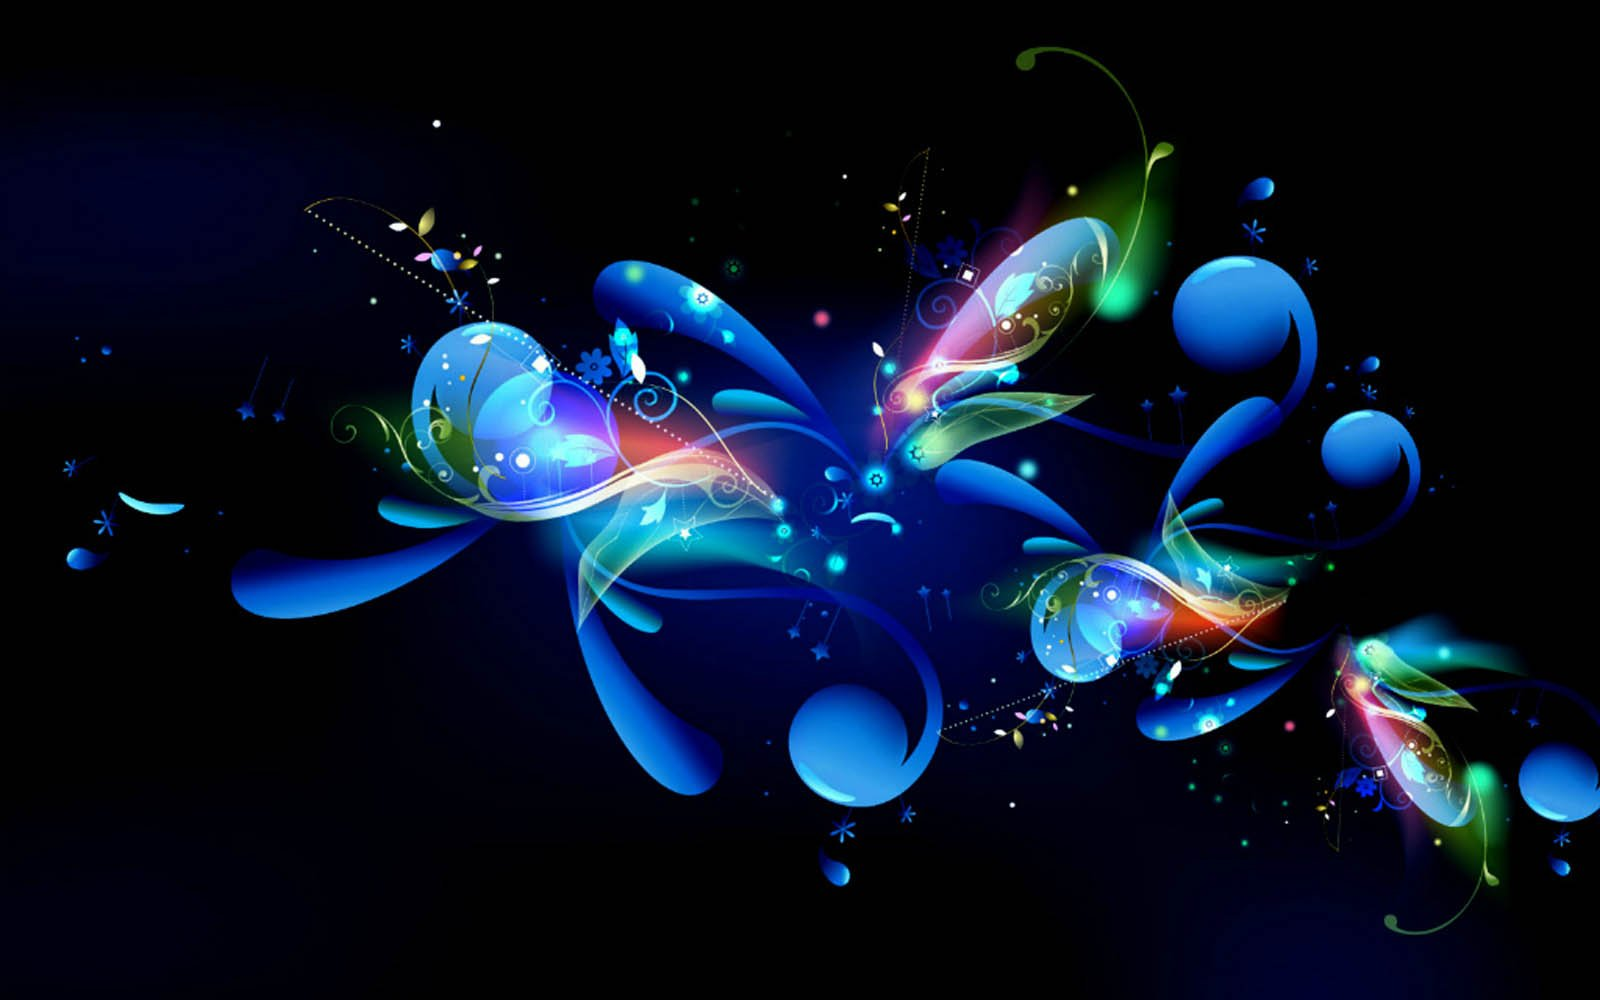 Tag Awesome Abstract Wallpapers BackgroundsPhotos Images and 1600x1000